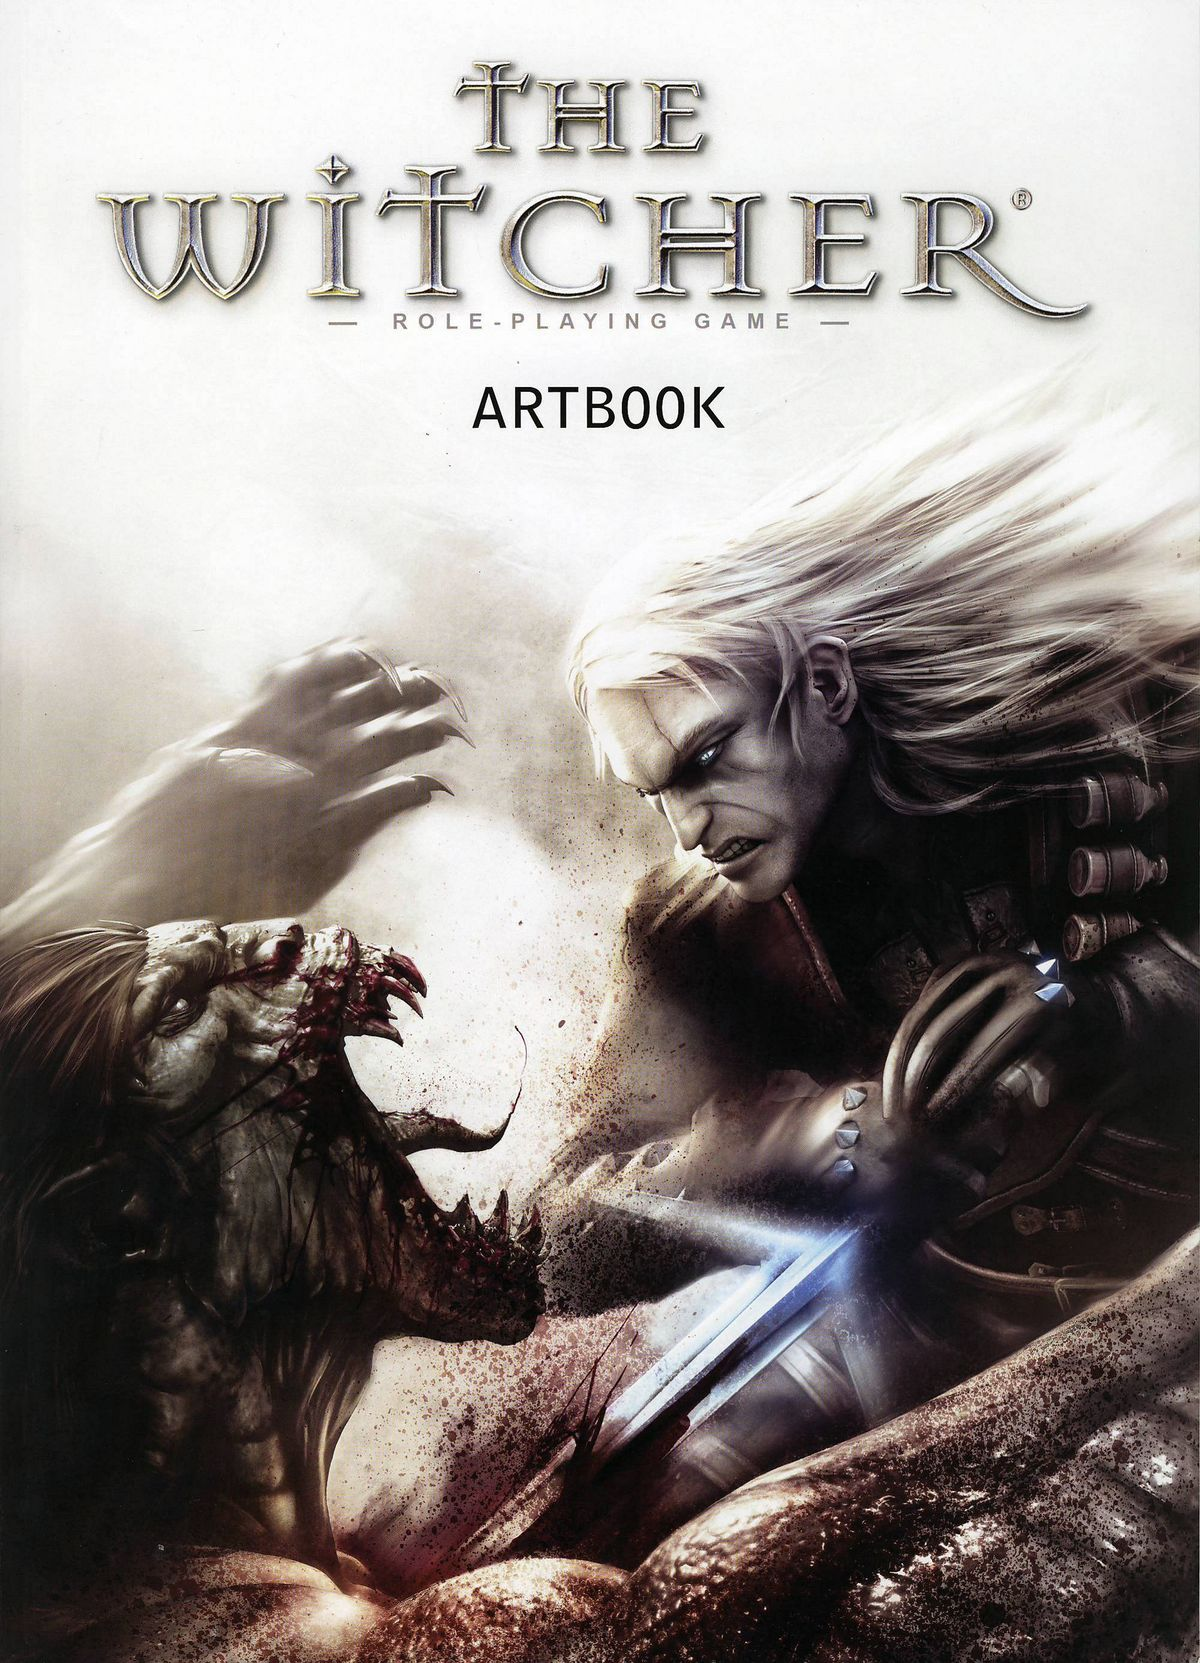 The Witcher Artbook - The Official Witcher Wiki